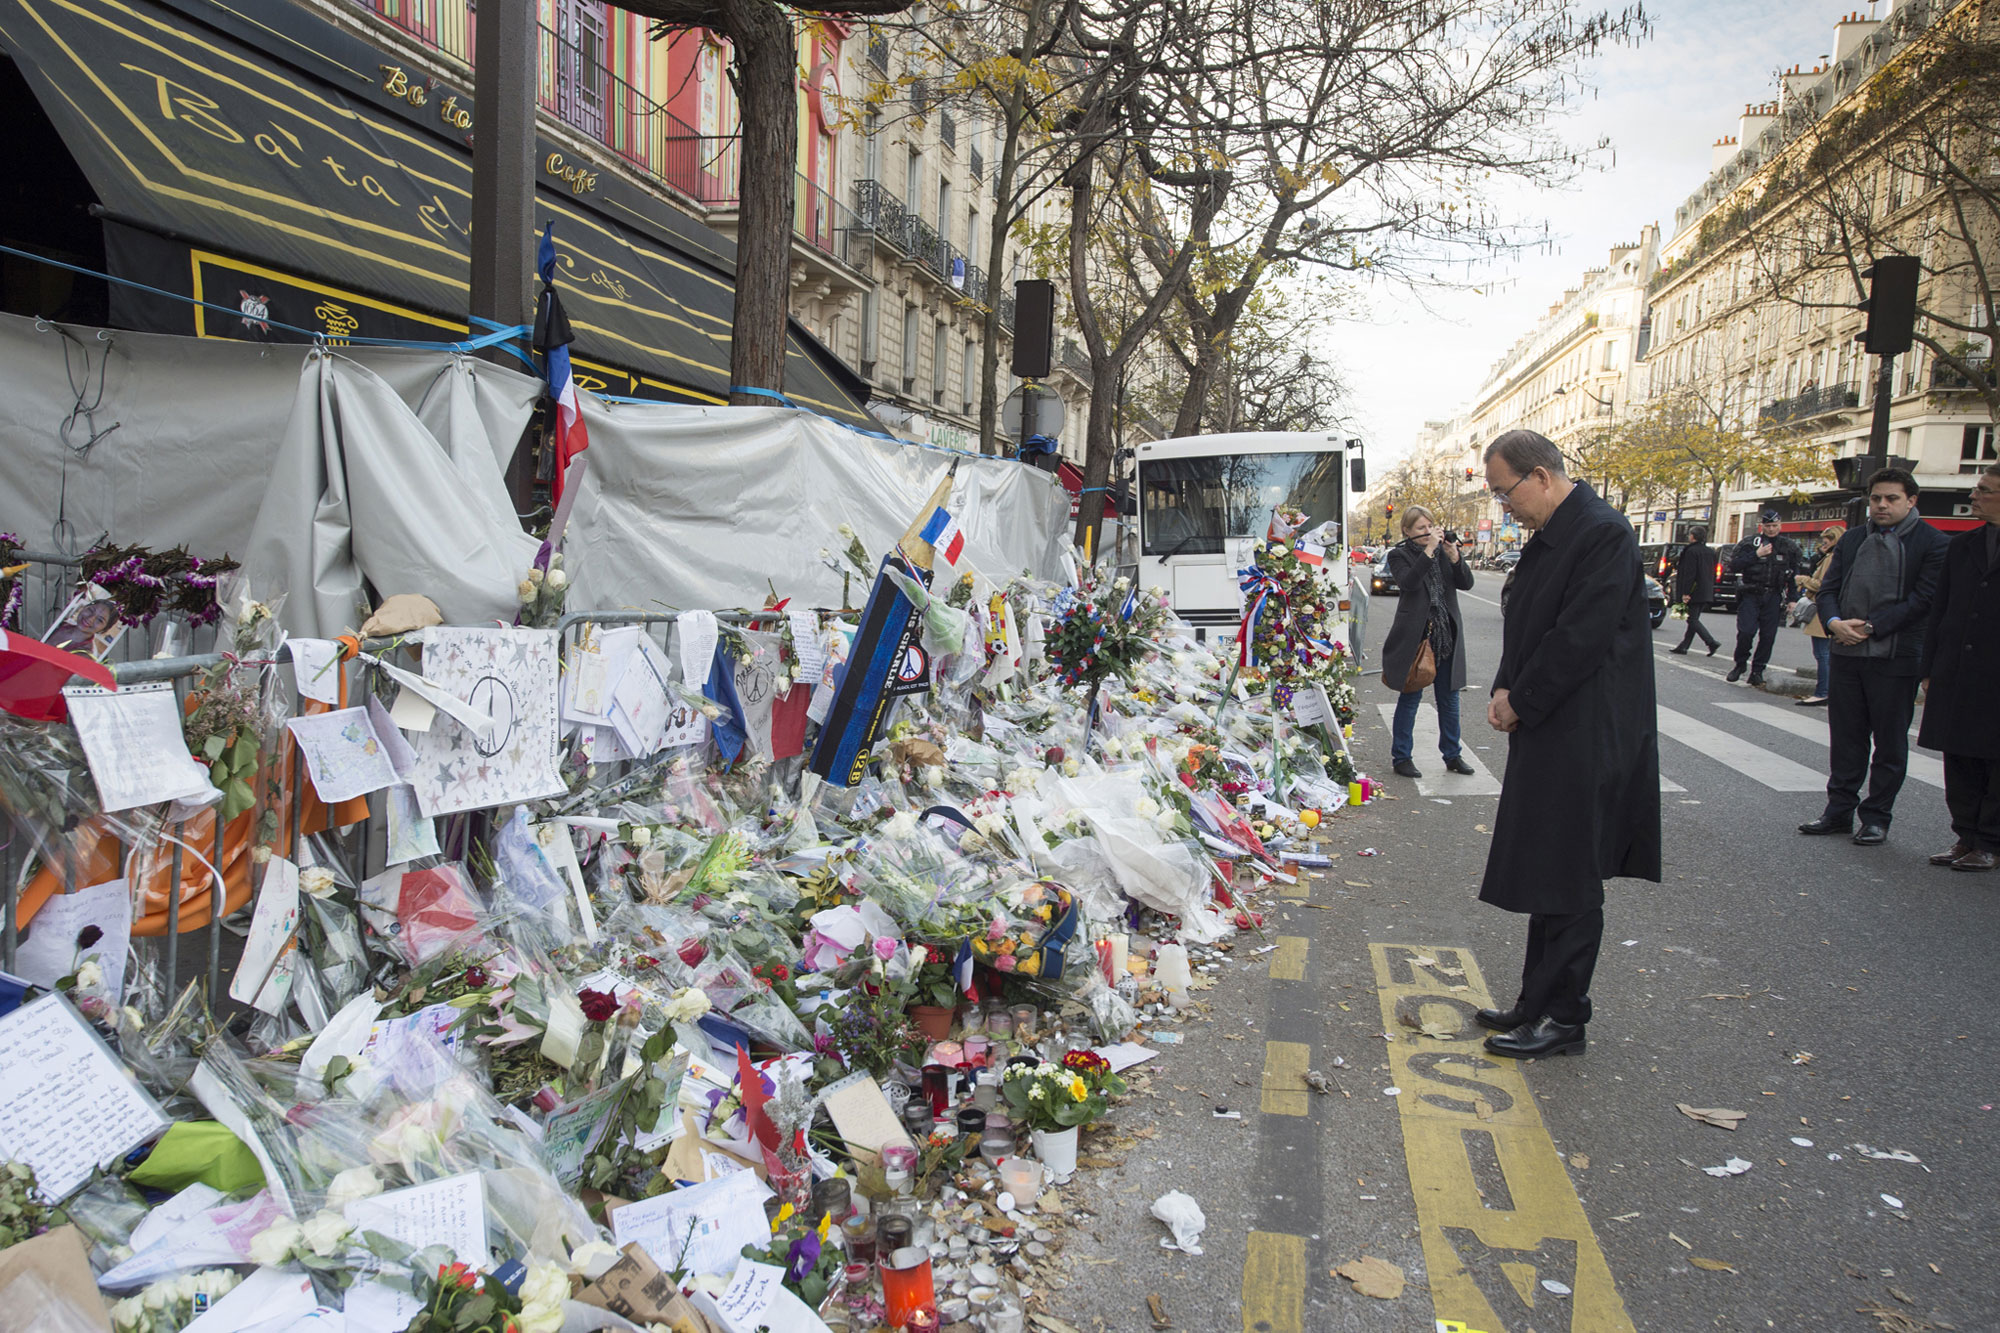 While in Paris for UN climate talks, Secretary-General Ban Ki-moon pays tribute to the victims of terror attacks that had recently taken place there. UN Photo/Eskinder Debebe